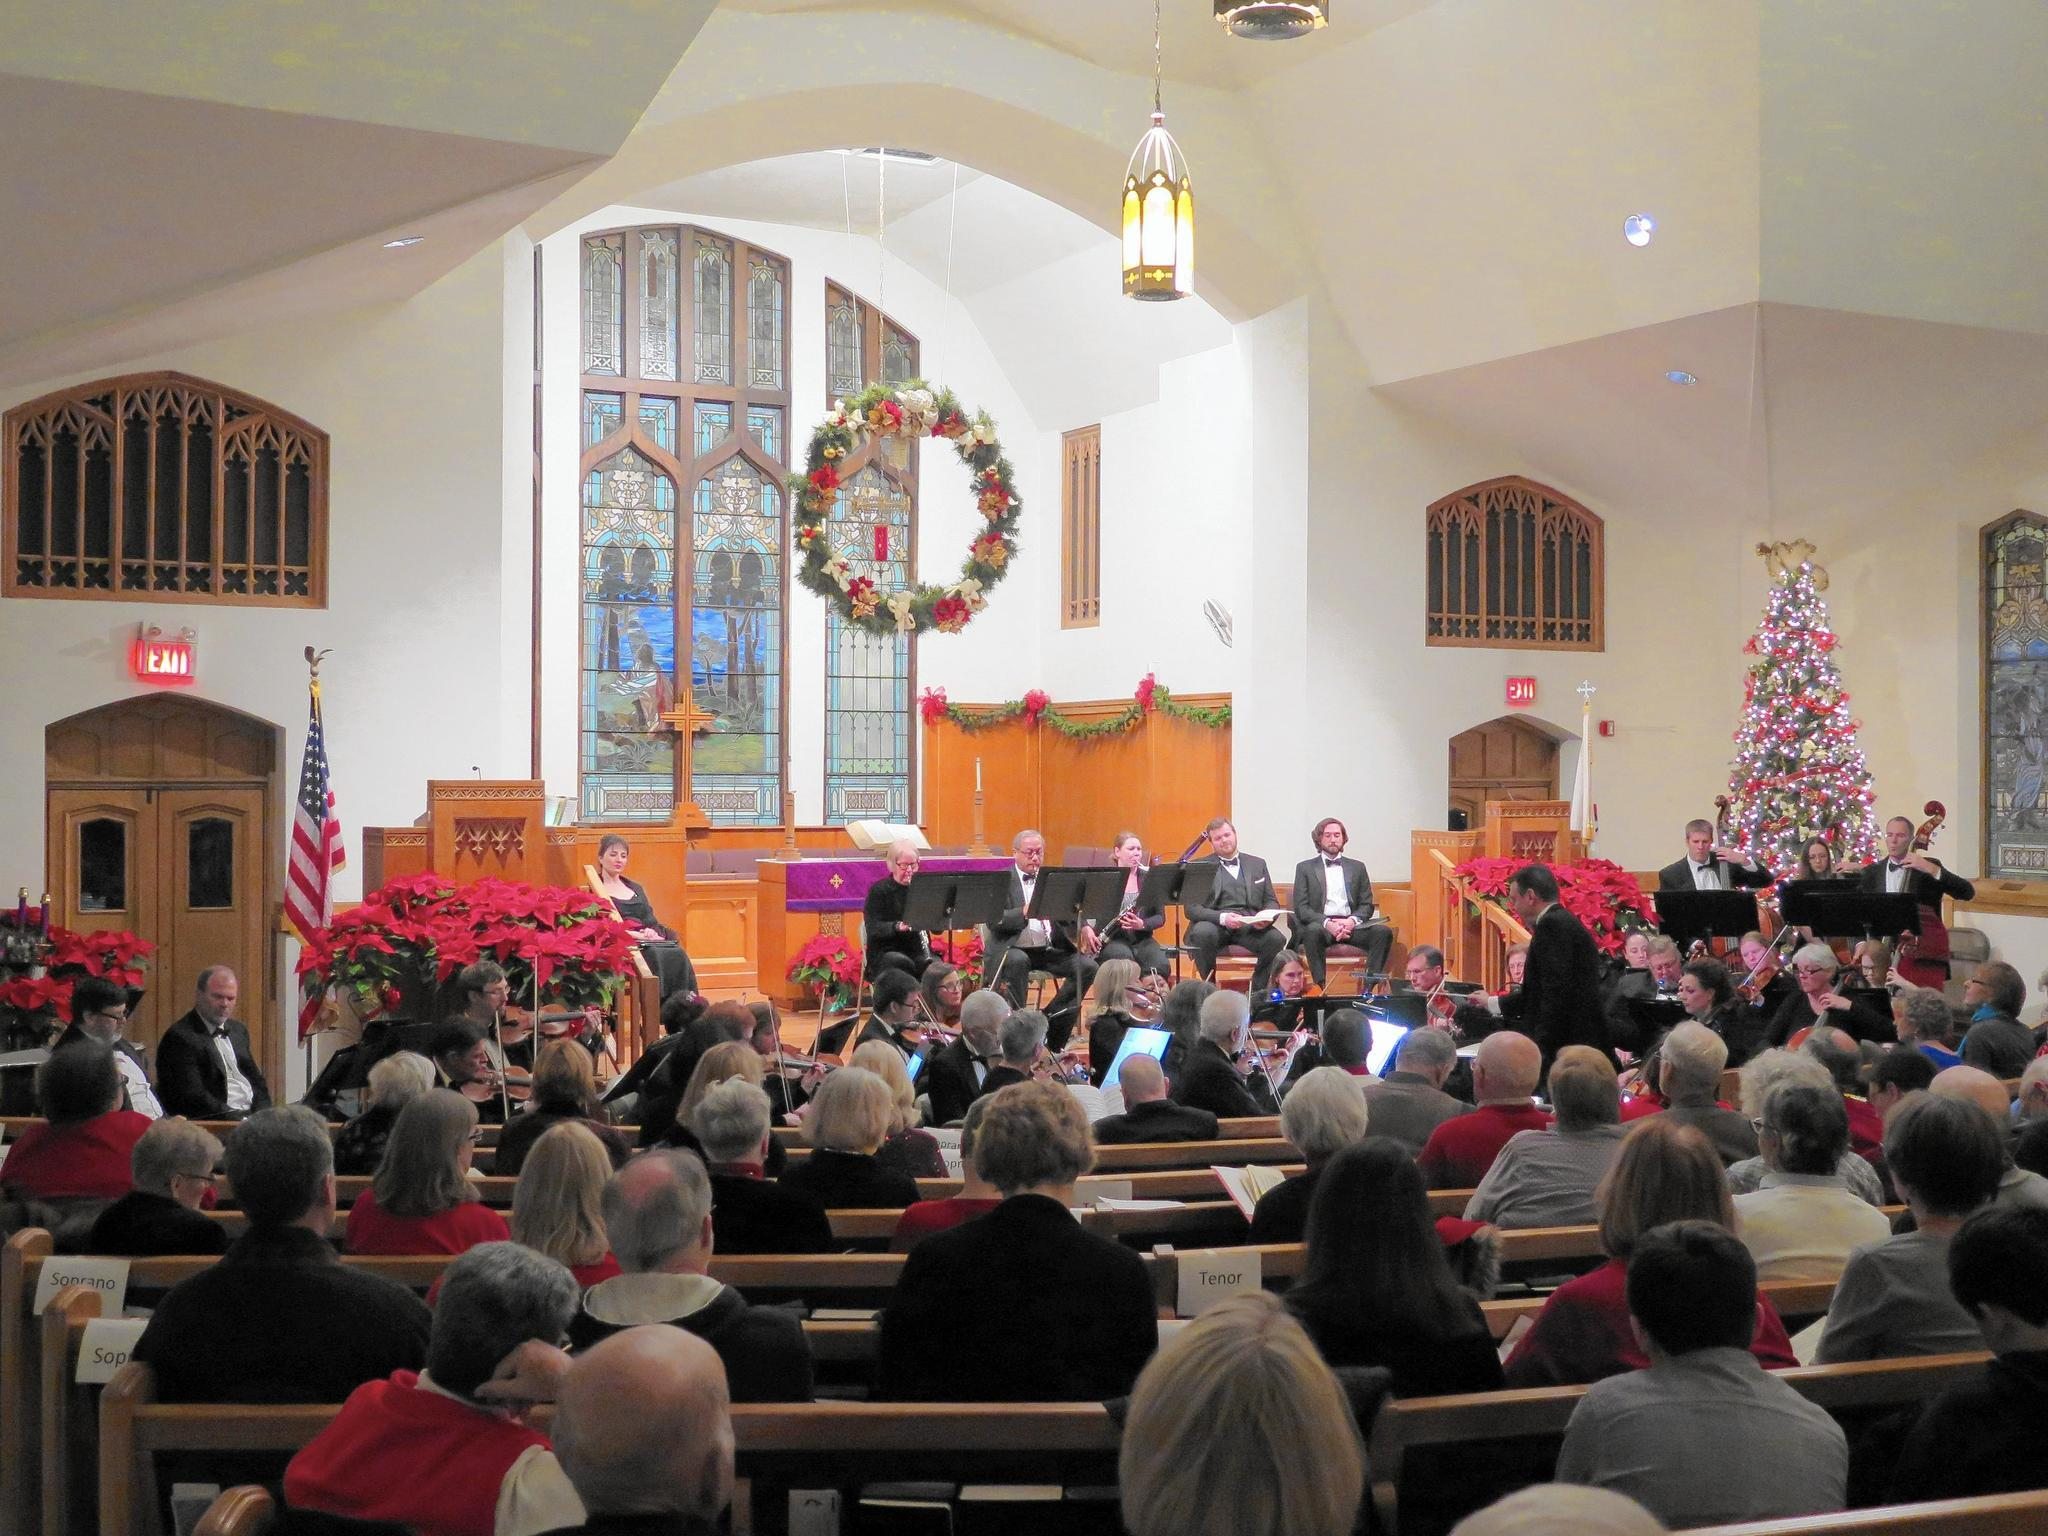 Waukegan musicians celebrate 10 years of do it yourself messiah waukegan musicians celebrate 10 years of do it yourself messiah lake county news sun solutioingenieria Images